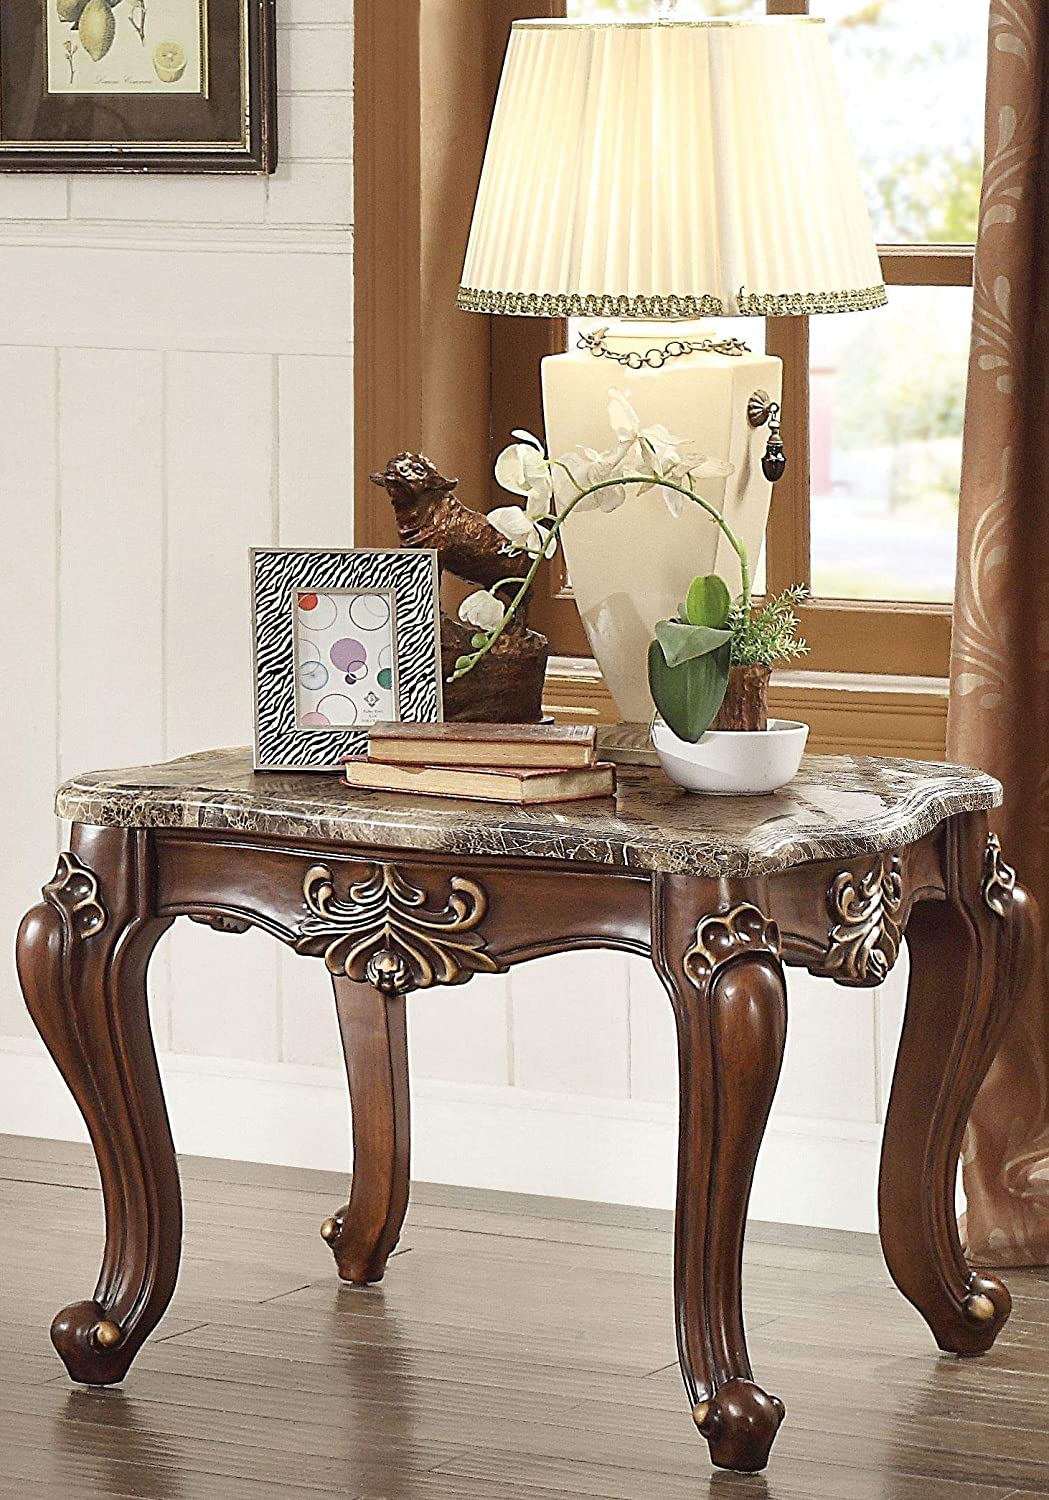 Walnut Q-Max SH1620 Marble Top Wooden End Table with Queen Anne Style Legs